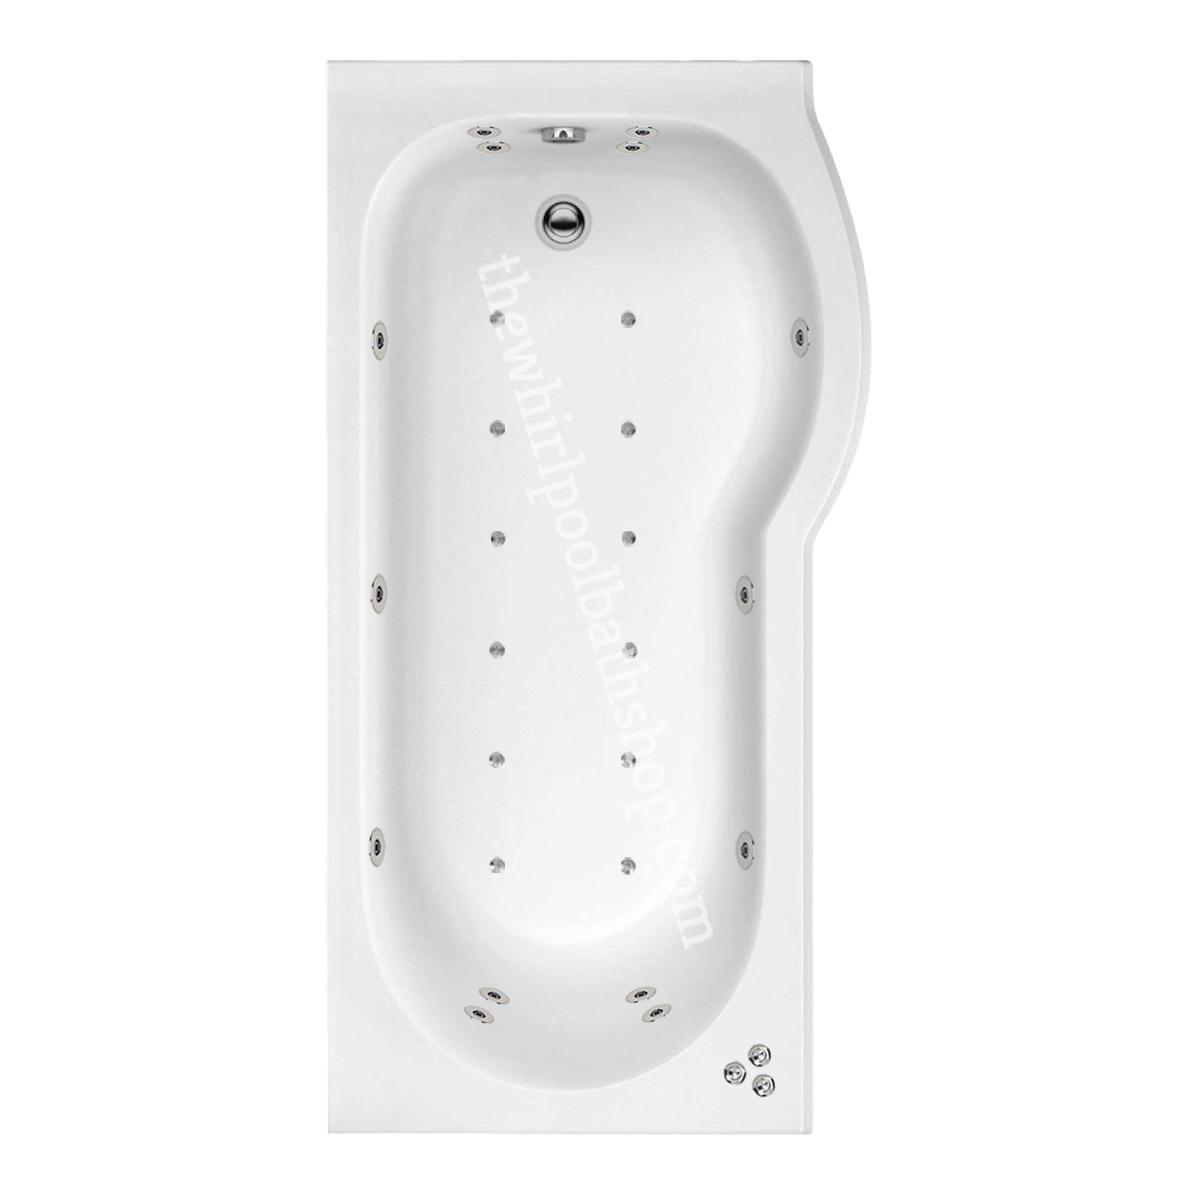 26 jet Trojan Concert 1600 mm Right Hand P Shaped Whirlpool Shower Bath